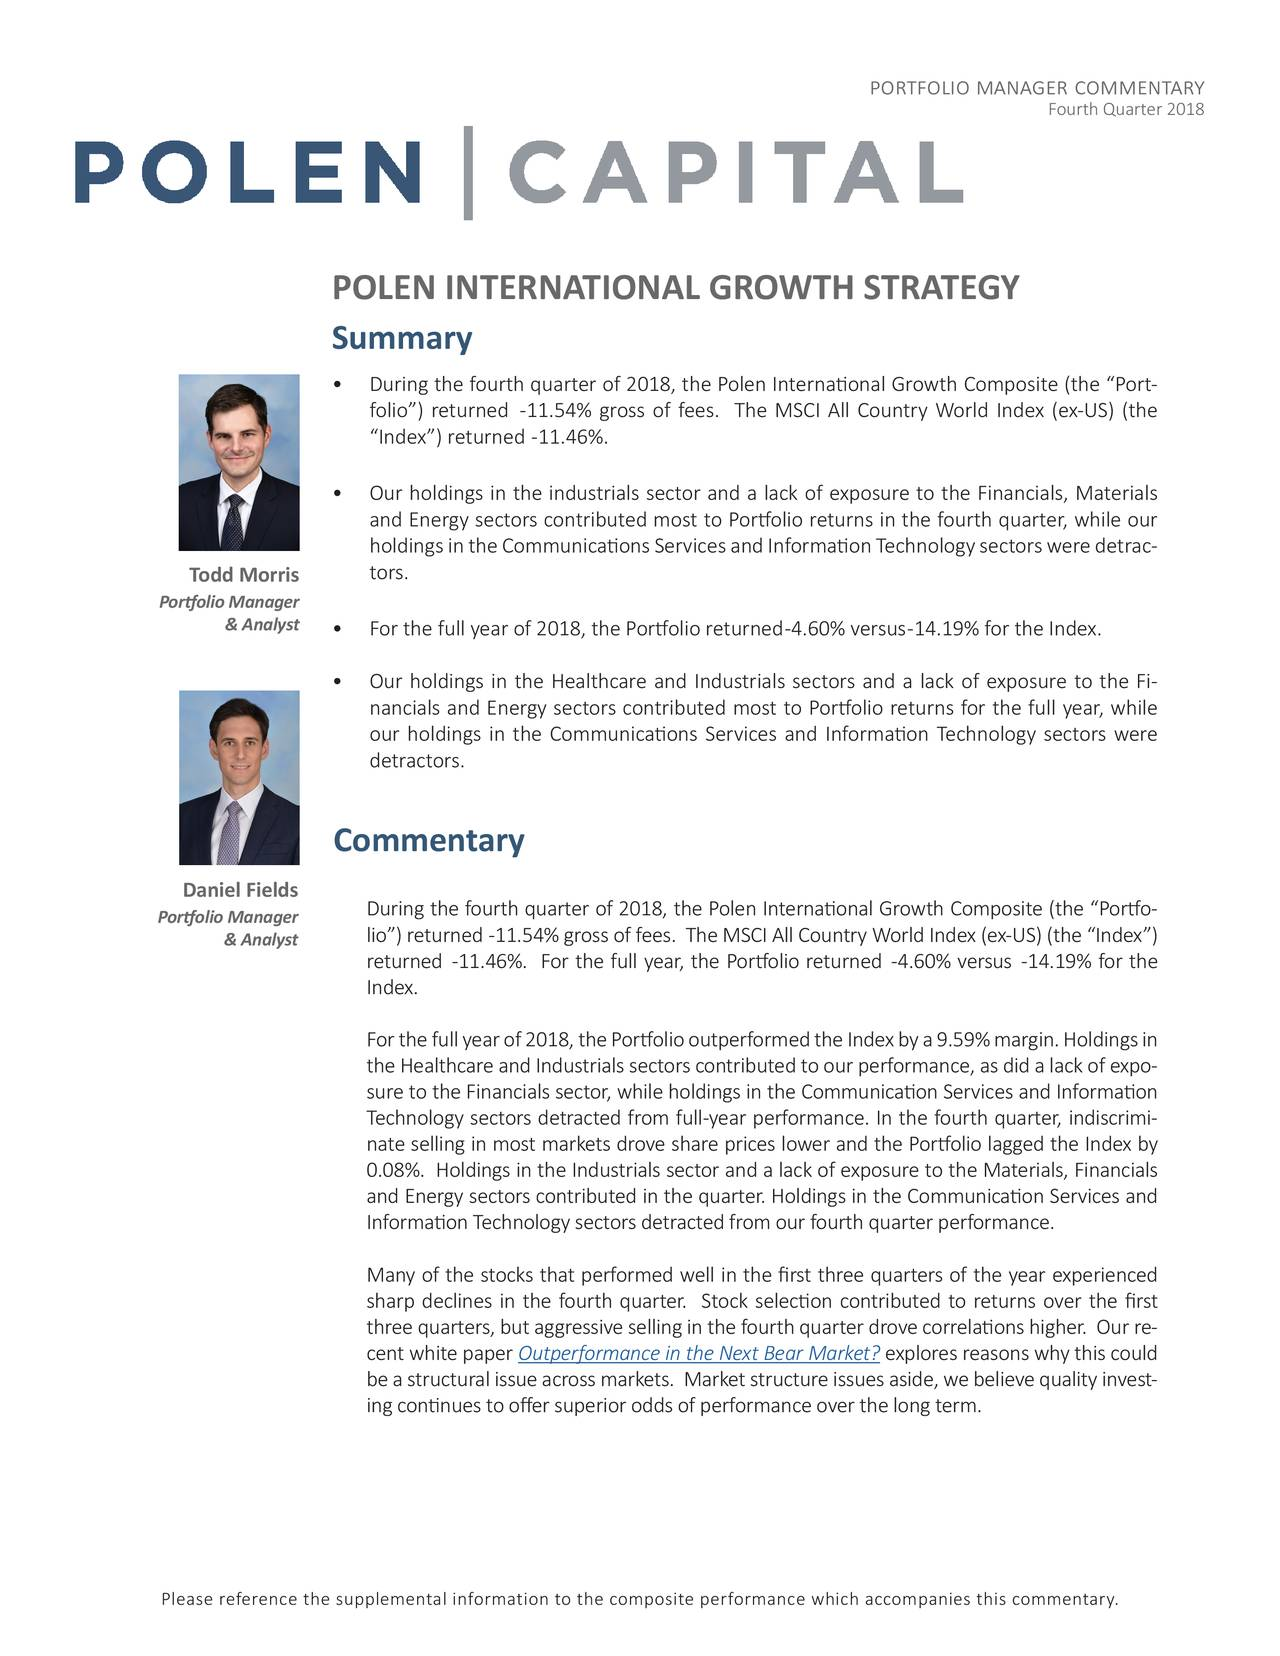 """Fourth Quarter 2018 POLEN INTERNATIONAL GROWTH STRATEGY Summary • During the fourth quarter of 2018, the Polen International Growth Composite (the """"Port- folio"""") returned -11.54% gross of fees. The MSCI All Country World Index (ex-US) (the """"Index"""") returned -11.46%. • Our holdings in the industrials sector and a lack of exposure to the Financials, Materials and Energy sectors contributed most to Portfolio returns in the fourth quarter, while our holdings in the Communications Services and Information Technology sectors were detrac- Todd Morris tors. Portfolio Manager & Analyst • For the full year of 2018, the Portfolio returned-4.60% versus-14.19% for the Index. • Our holdings in the Healthcare and Industrials sectors and a lack of exposure to the Fi- nancials and Energy sectors contributed most to Portfolio returns for the full year, while our holdings in the Communications Services and Information Technology sectors were detractors. Commentary Daniel Fields Portfolio Manager During the fourth quarter of 2018, the Polen International Growth Composite (the """"Portf-o & Analyst lio"""") returned -11.54% gross of fees. The MSCI All Country World Index (ex-US) (the """"Index"""") returned -11.46%. For the full year, the Portfolio returned -4.60% versus -14.19% for the Index. For the full year of 2018, the Portfolio outperformed the Index by a 9.59% margin. Holdings in the Healthcare and Industrials sectors contributed to our performance, as did a lack-of exp sure to the Financials sector, while holdings in the Communication Services and Information Technology sectors detracted from full-year performance. In the fourth quarter, indi- iim nate selling in most markets drove share prices lower and the Portfolio lagged the Index by 0.08%. Holdings in the Industrials sector and a lack of exposure to the Materials, Financials and Energy sectors contributed in the quarter. Holdings in the Communication Services and Information Technology sectors detracted from our fourth quarter performa"""